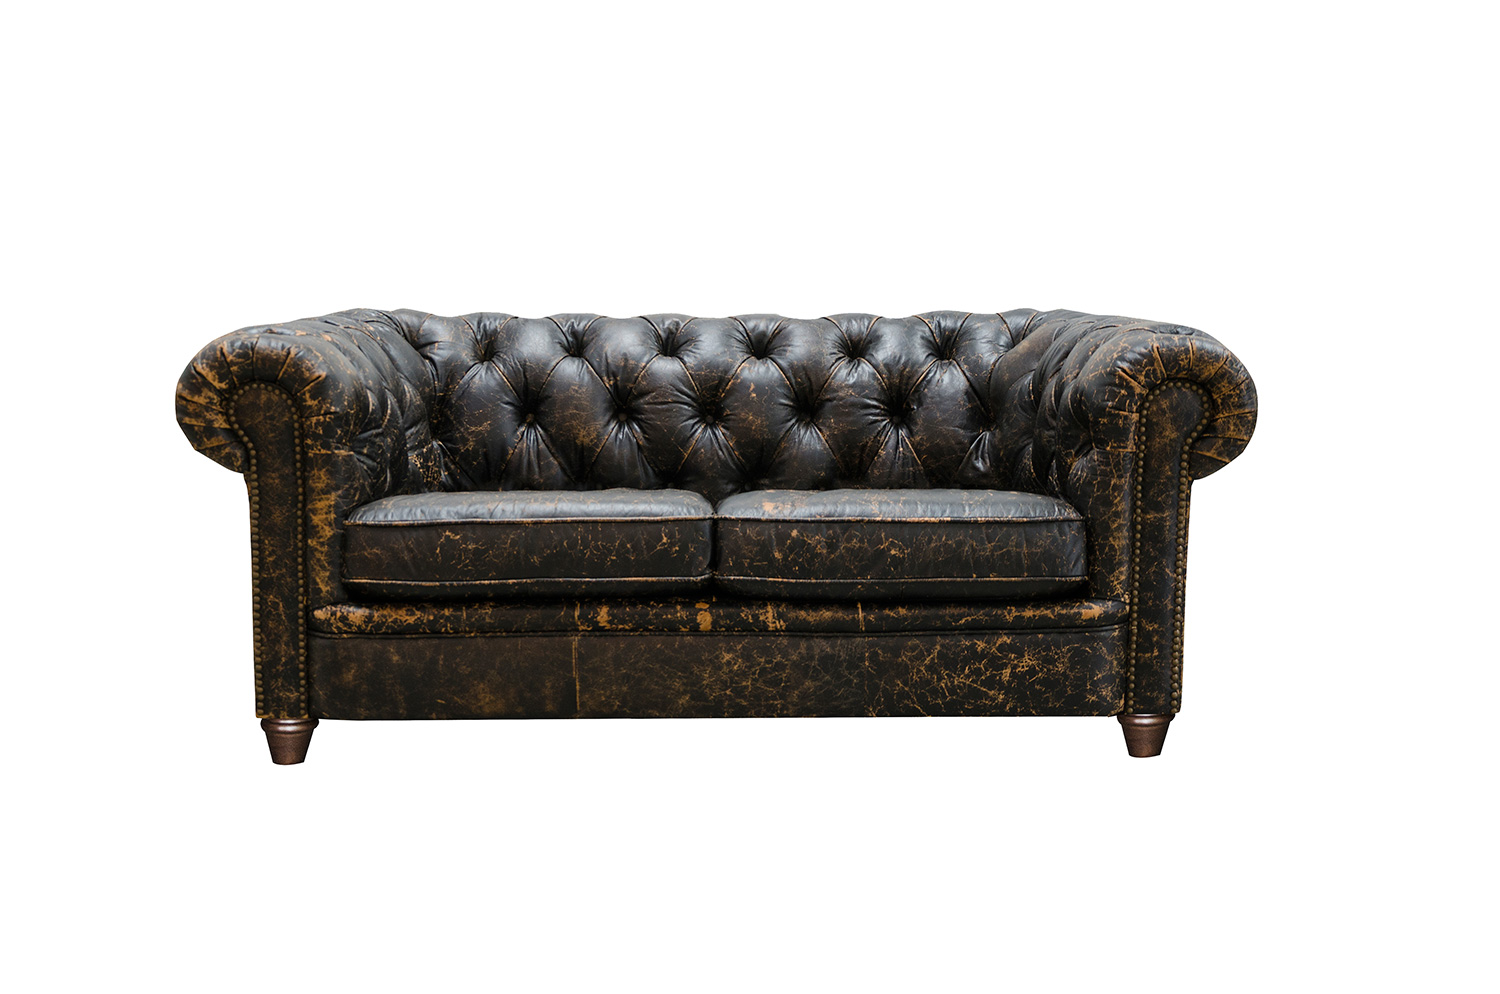 Beautiful sofa for A Small Room